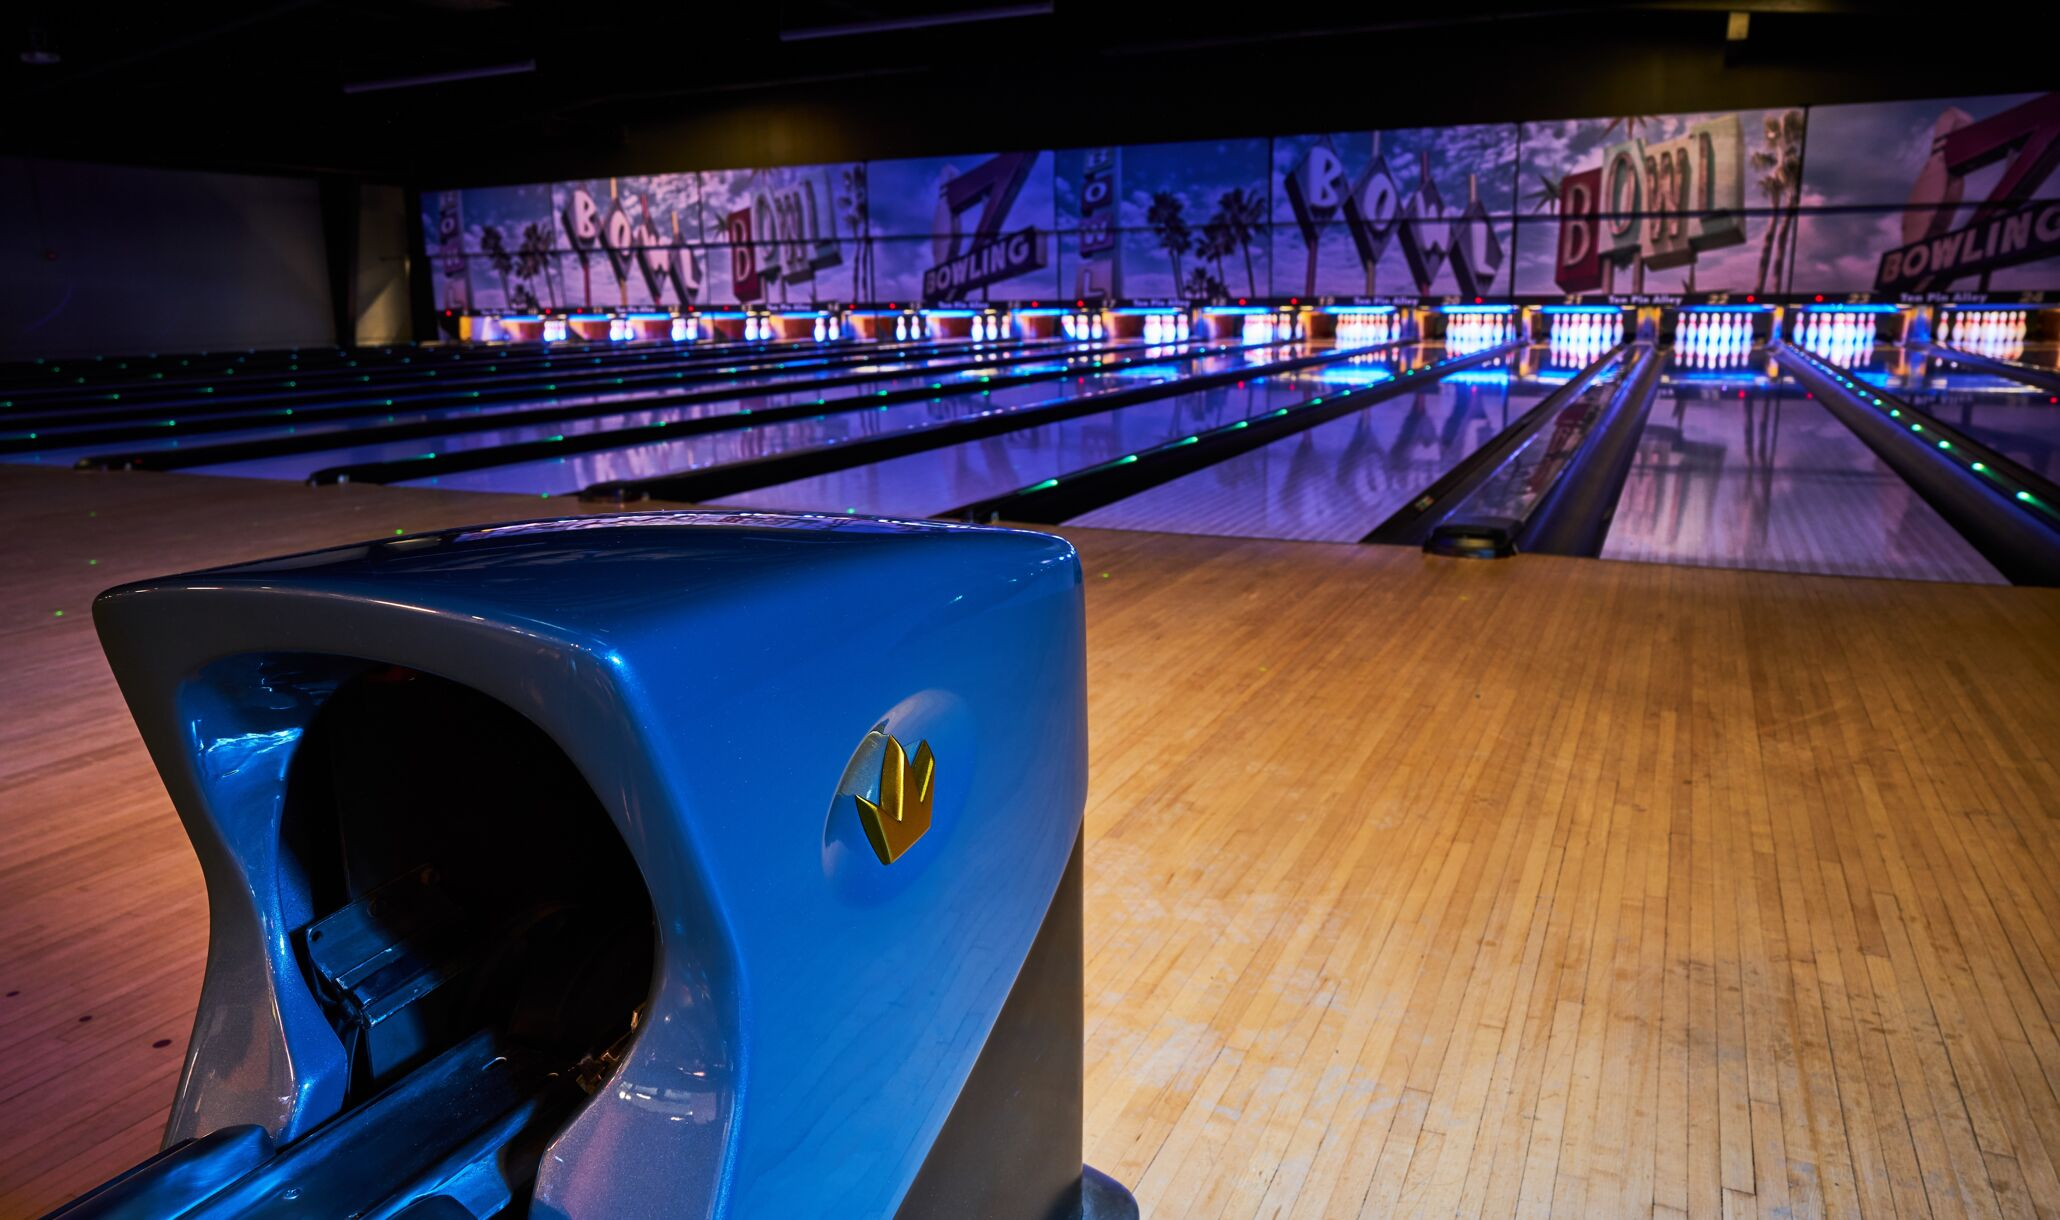 Ten Pin Alley Oh Main 20180227 1089-3